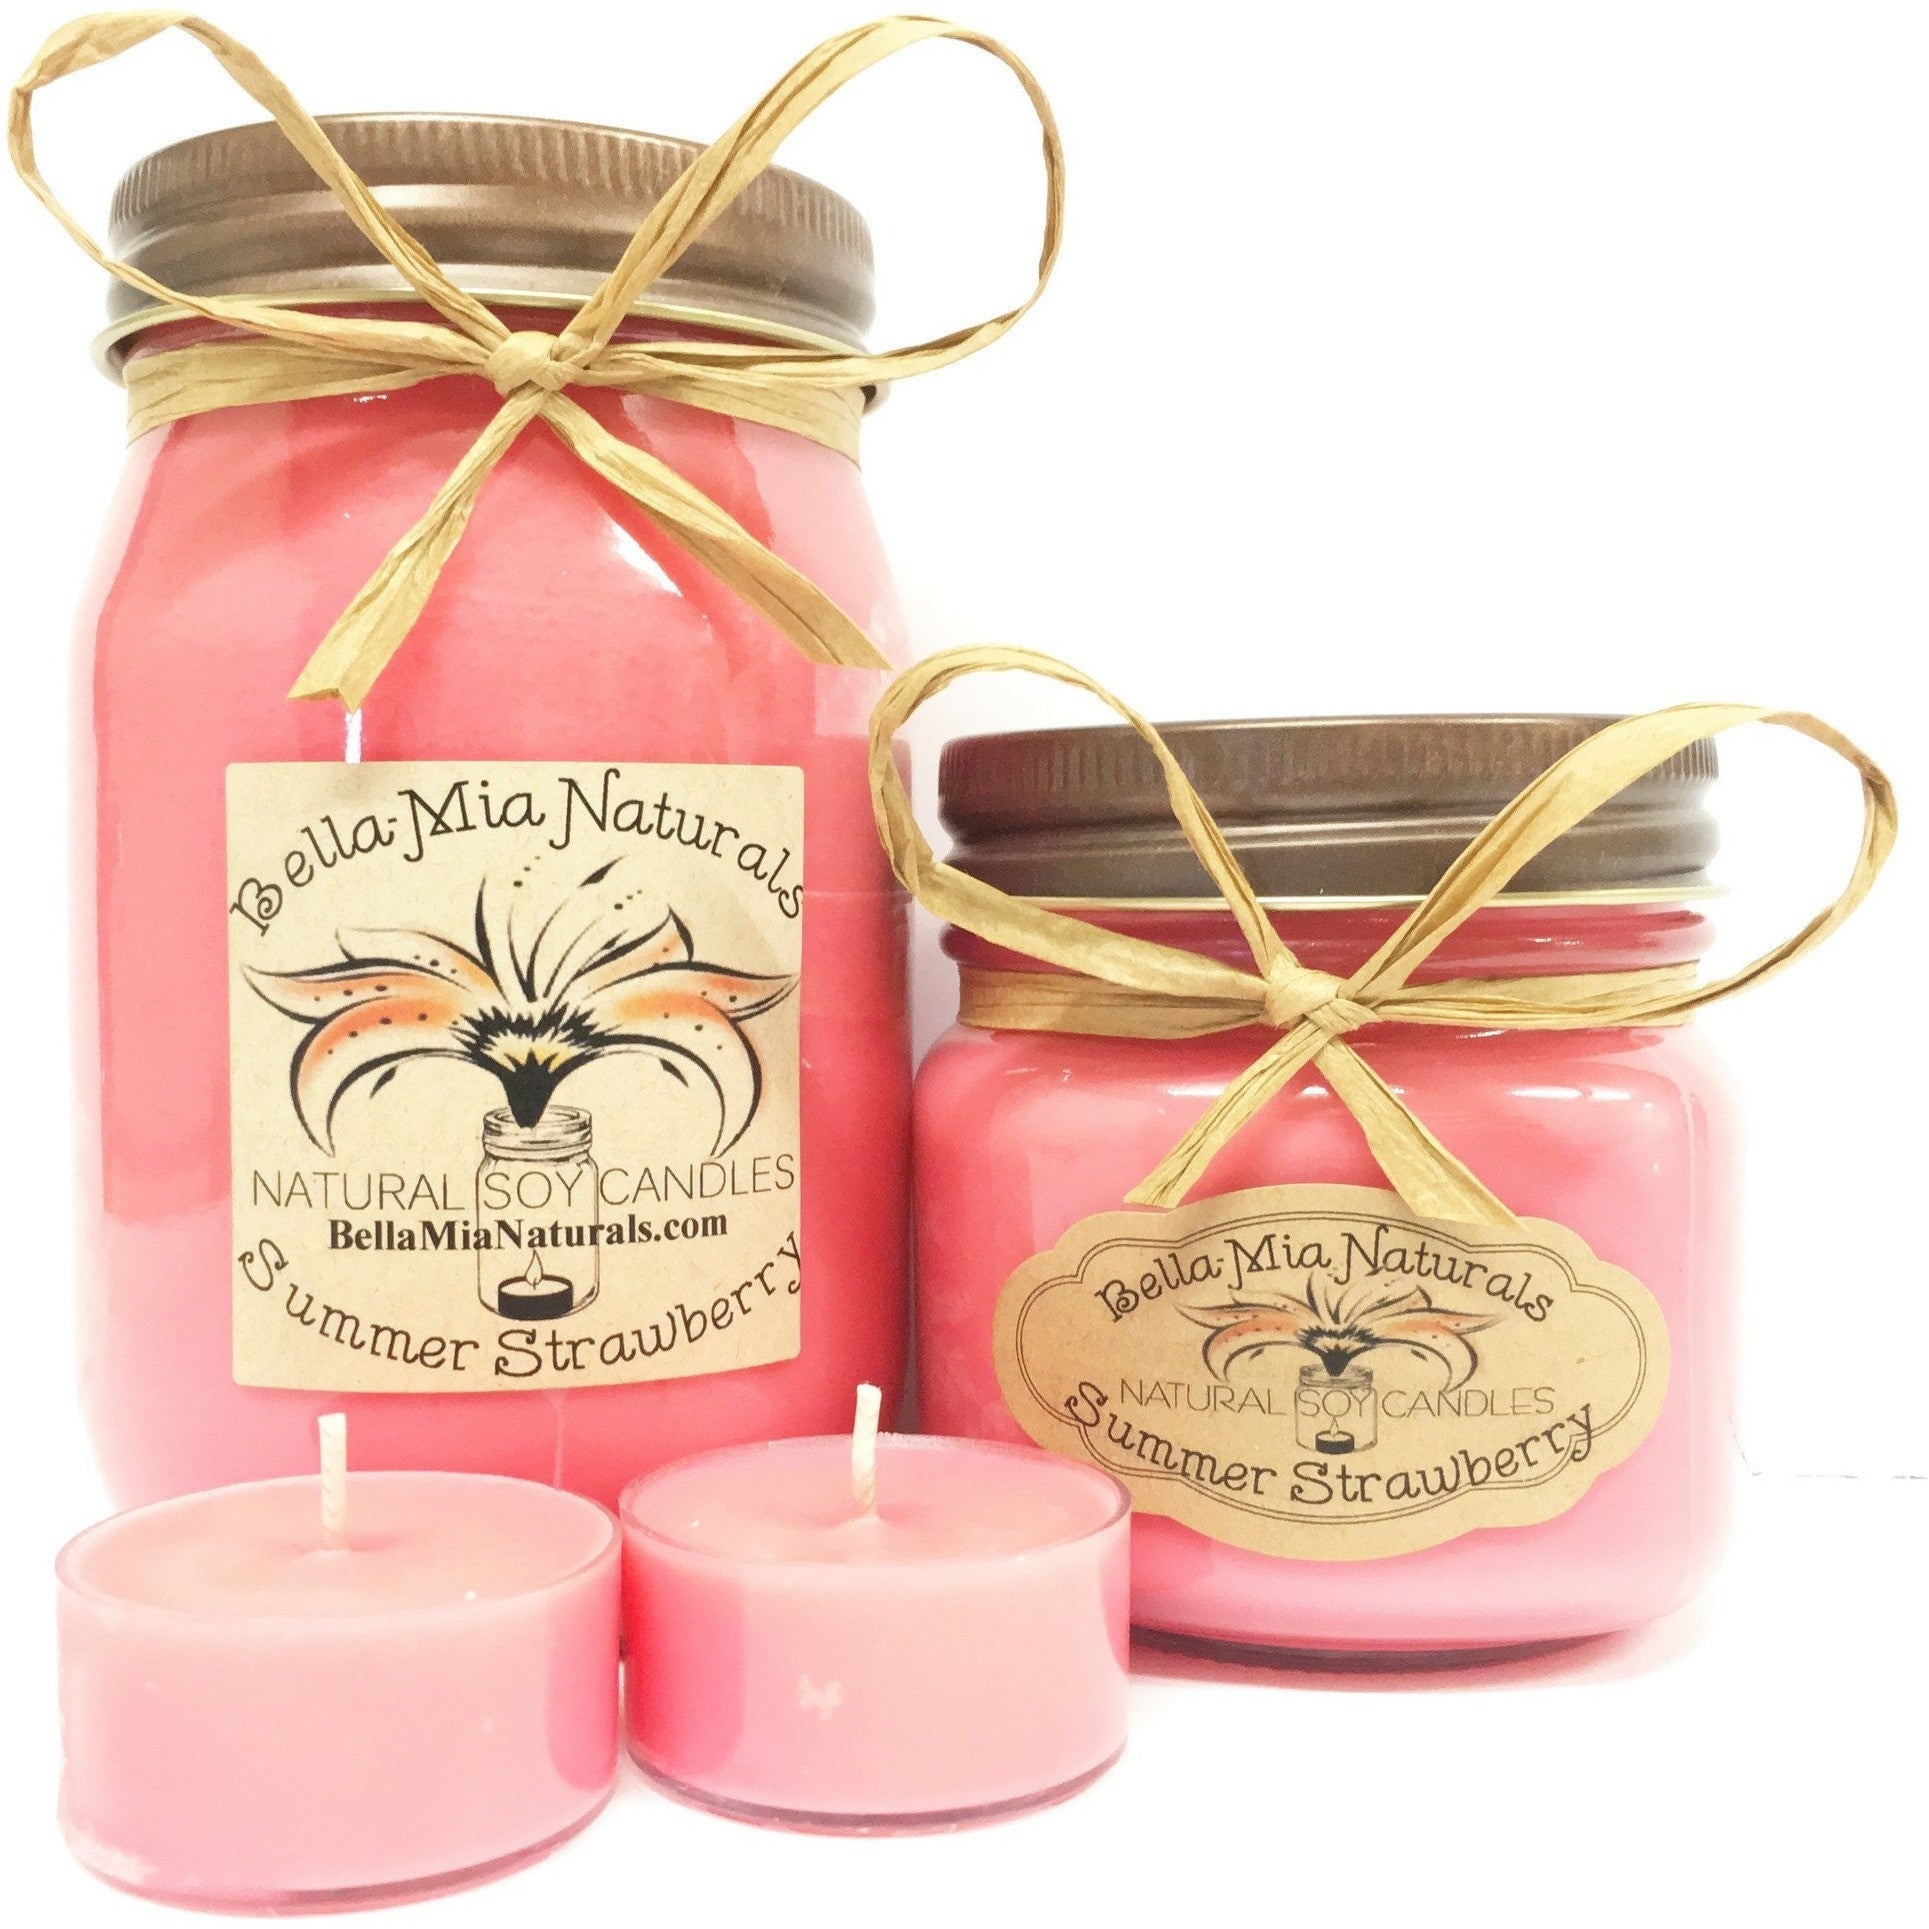 Summer Strawberry Natural Hand Poured Soy Candles -  - Bella-Mia Naturals All Natural Soy Candles & Lip Balms - 1